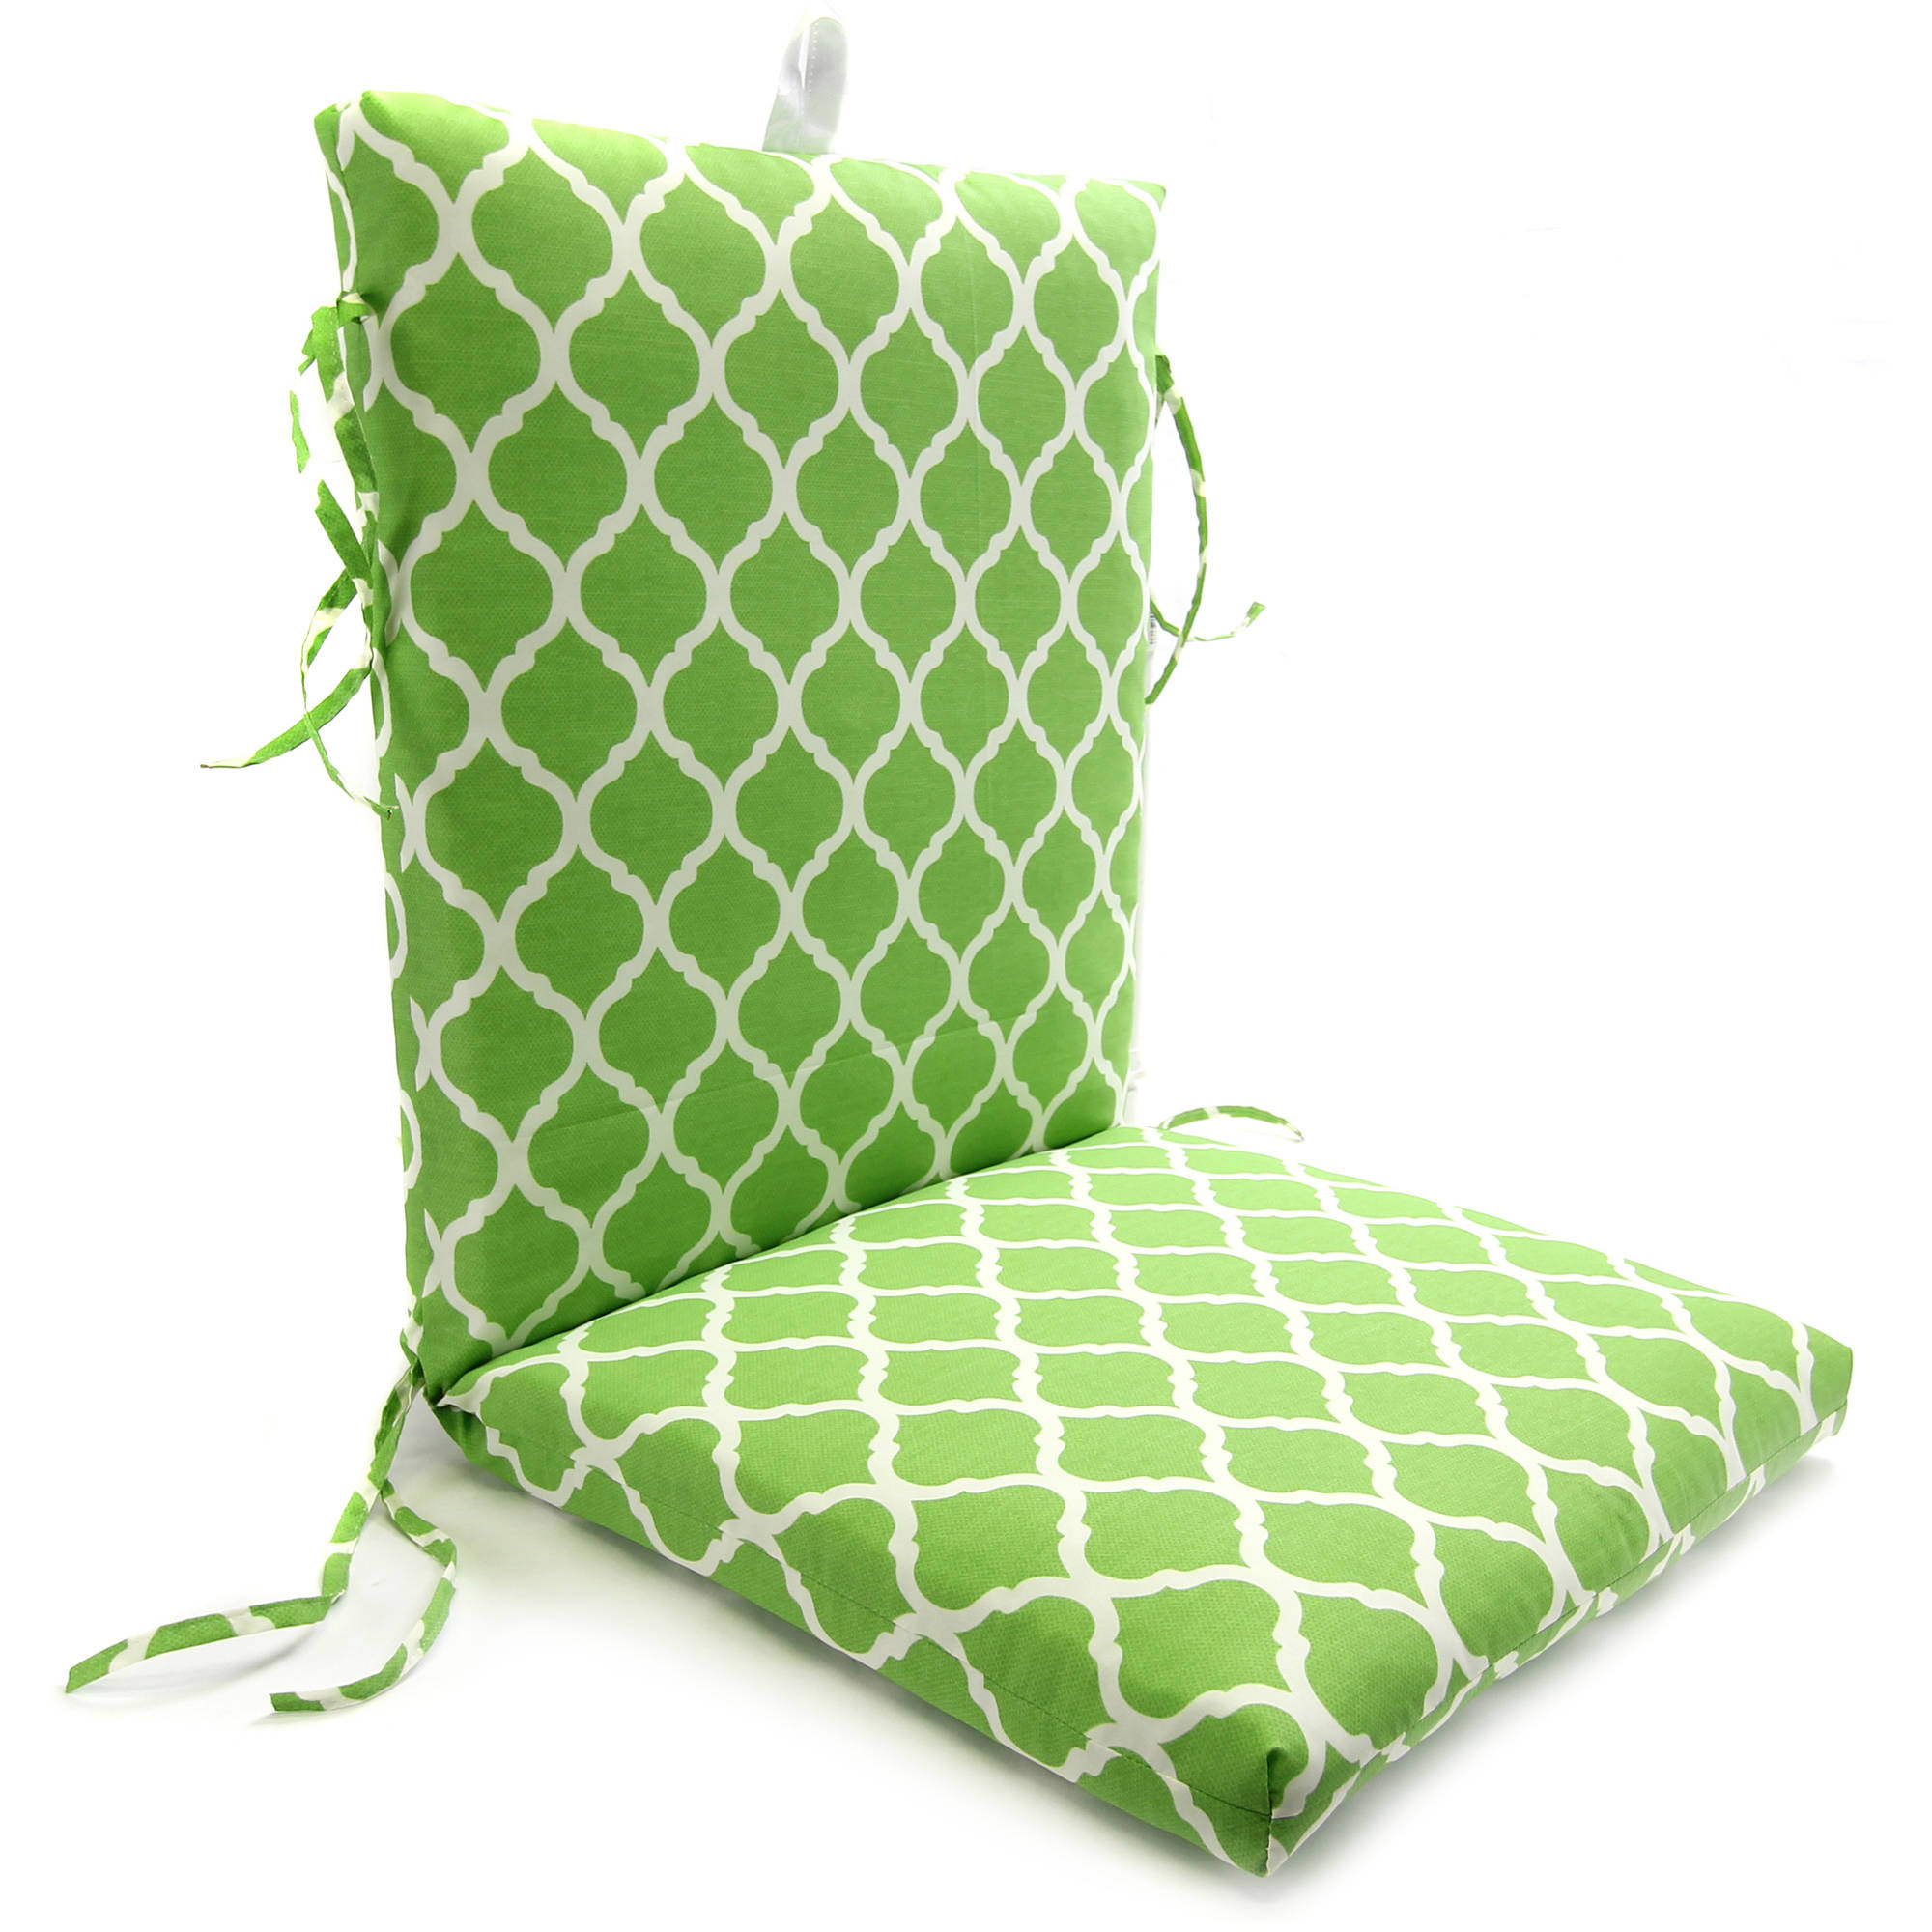 Mainstays Chair Cushion, Green Trellis   Walmart.com